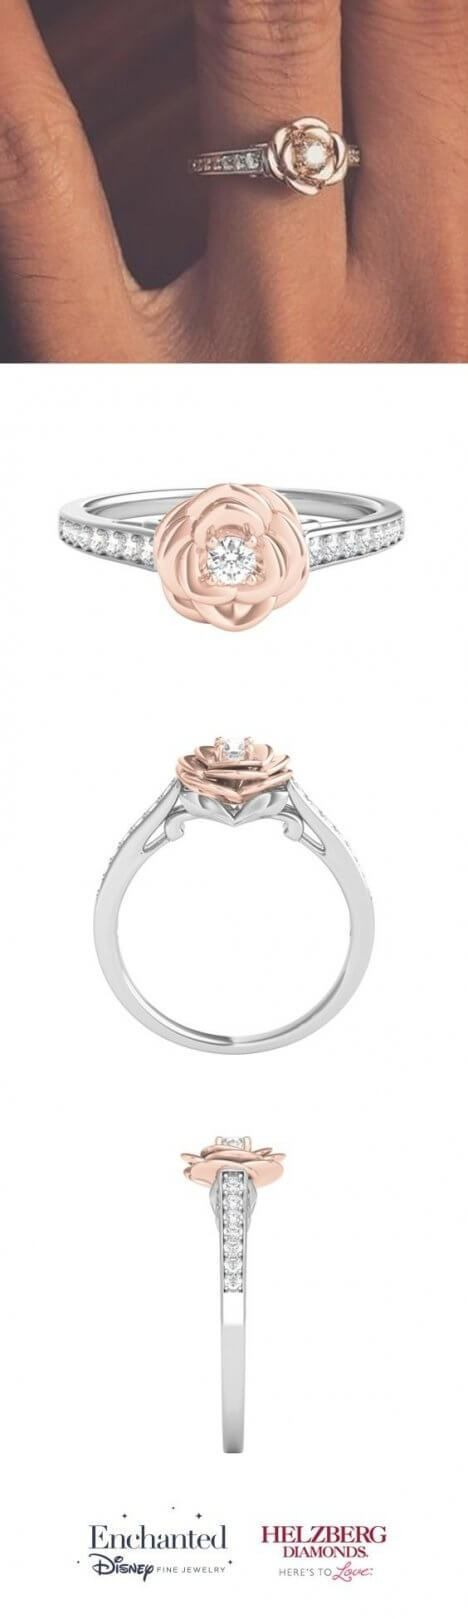 Best 30 Beauty And The Beast Inspired Wedding Rings #weddingring